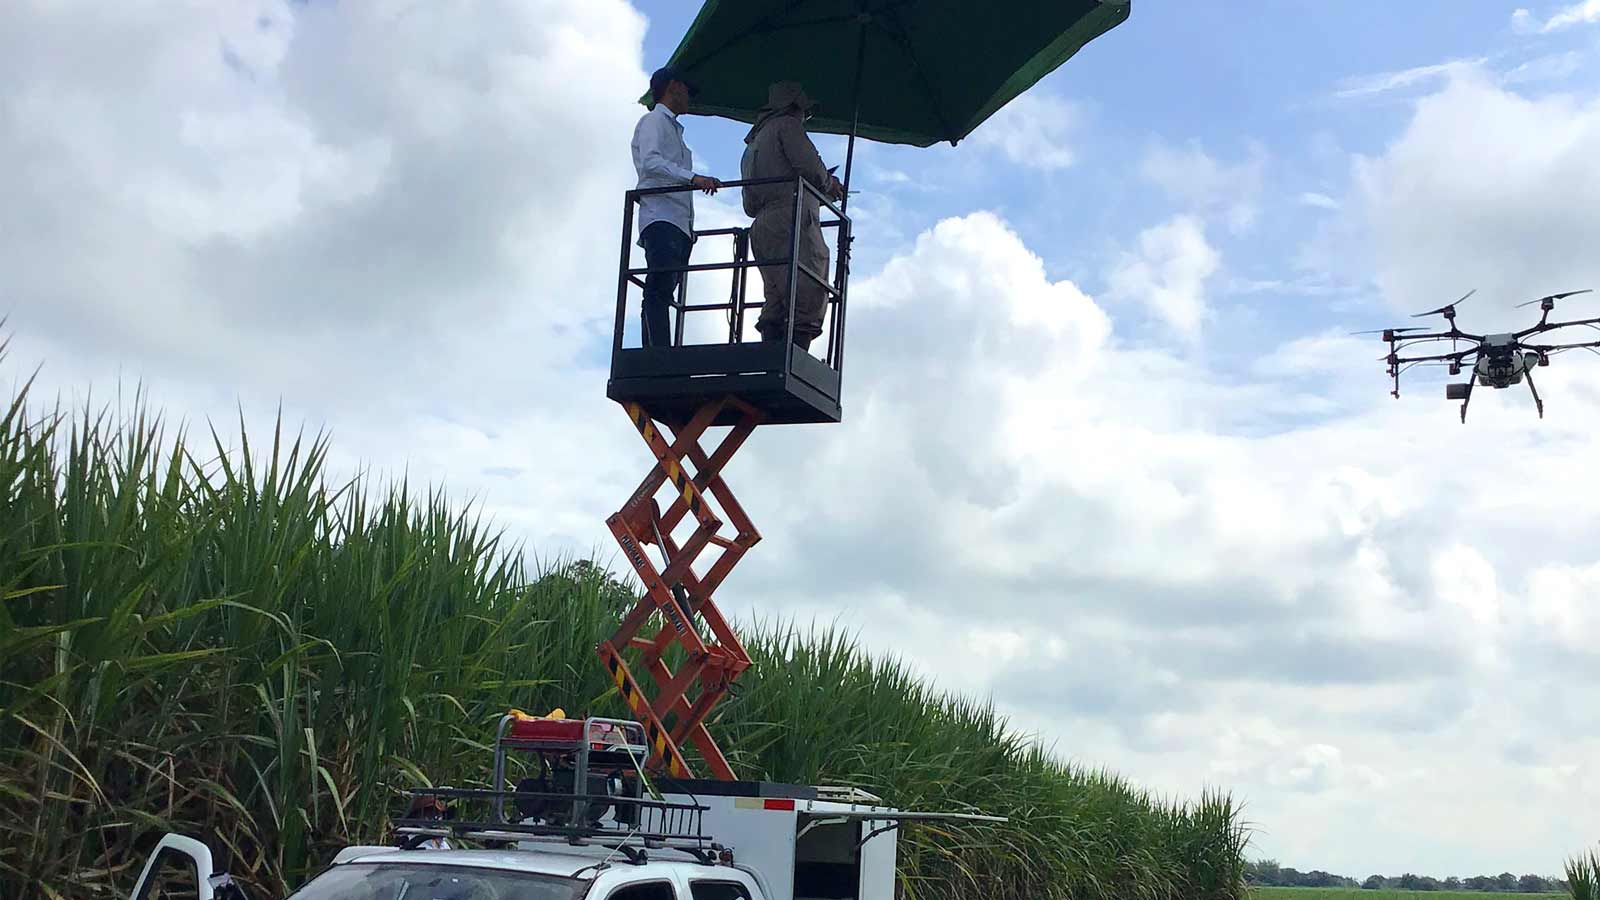 applying the ripening agent with a spraying drone according to the locations identified on the variable rate application map